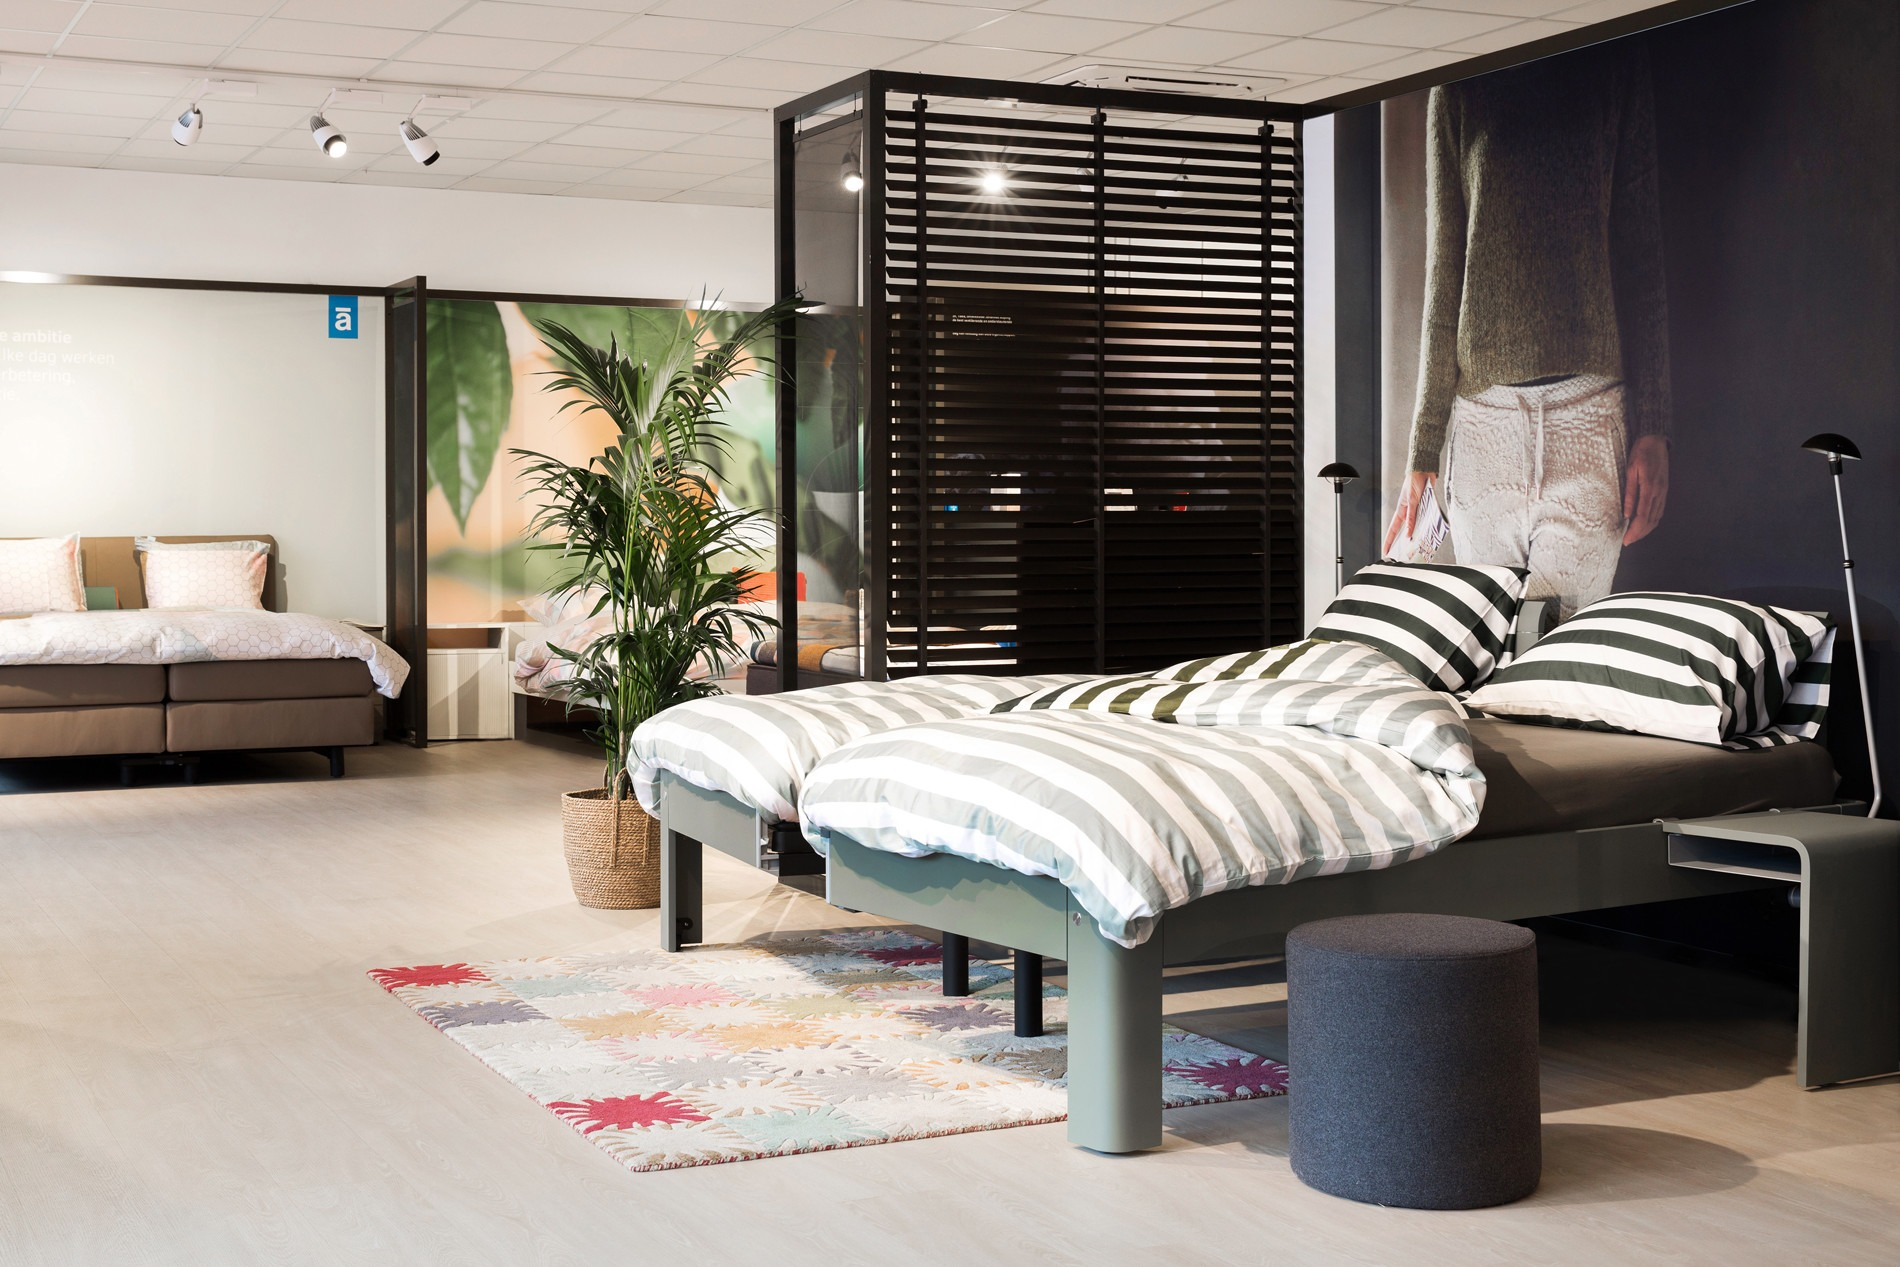 beds amersfoort auping